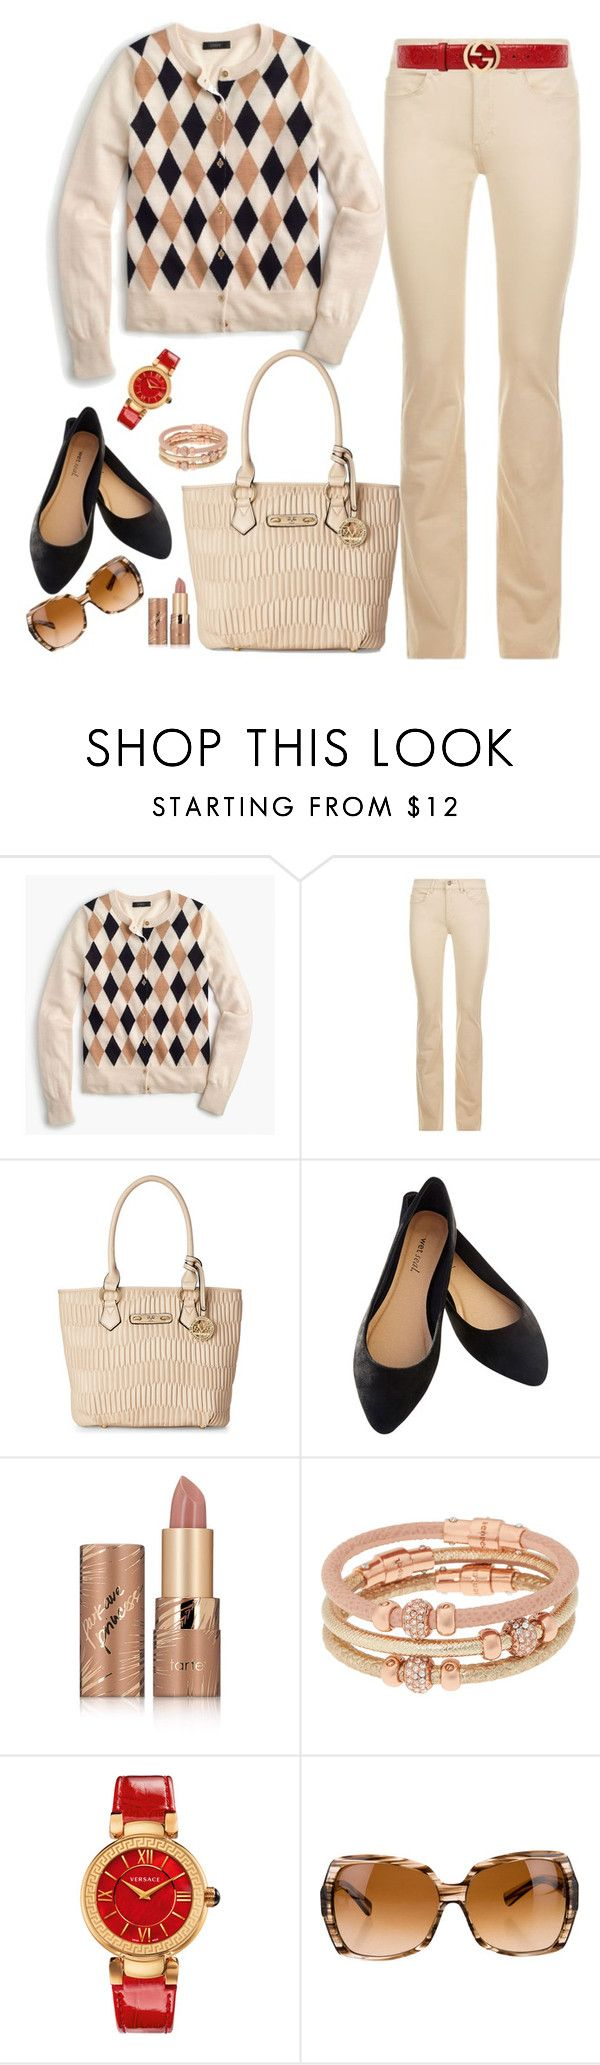 """""""J Crew Sweater"""" by mandeerose ❤ liked on Polyvore featuring J.Crew, Escada Sport, Versace 19•69, Wet Seal, tarte, Henri Bendel, Versace and Gucci"""